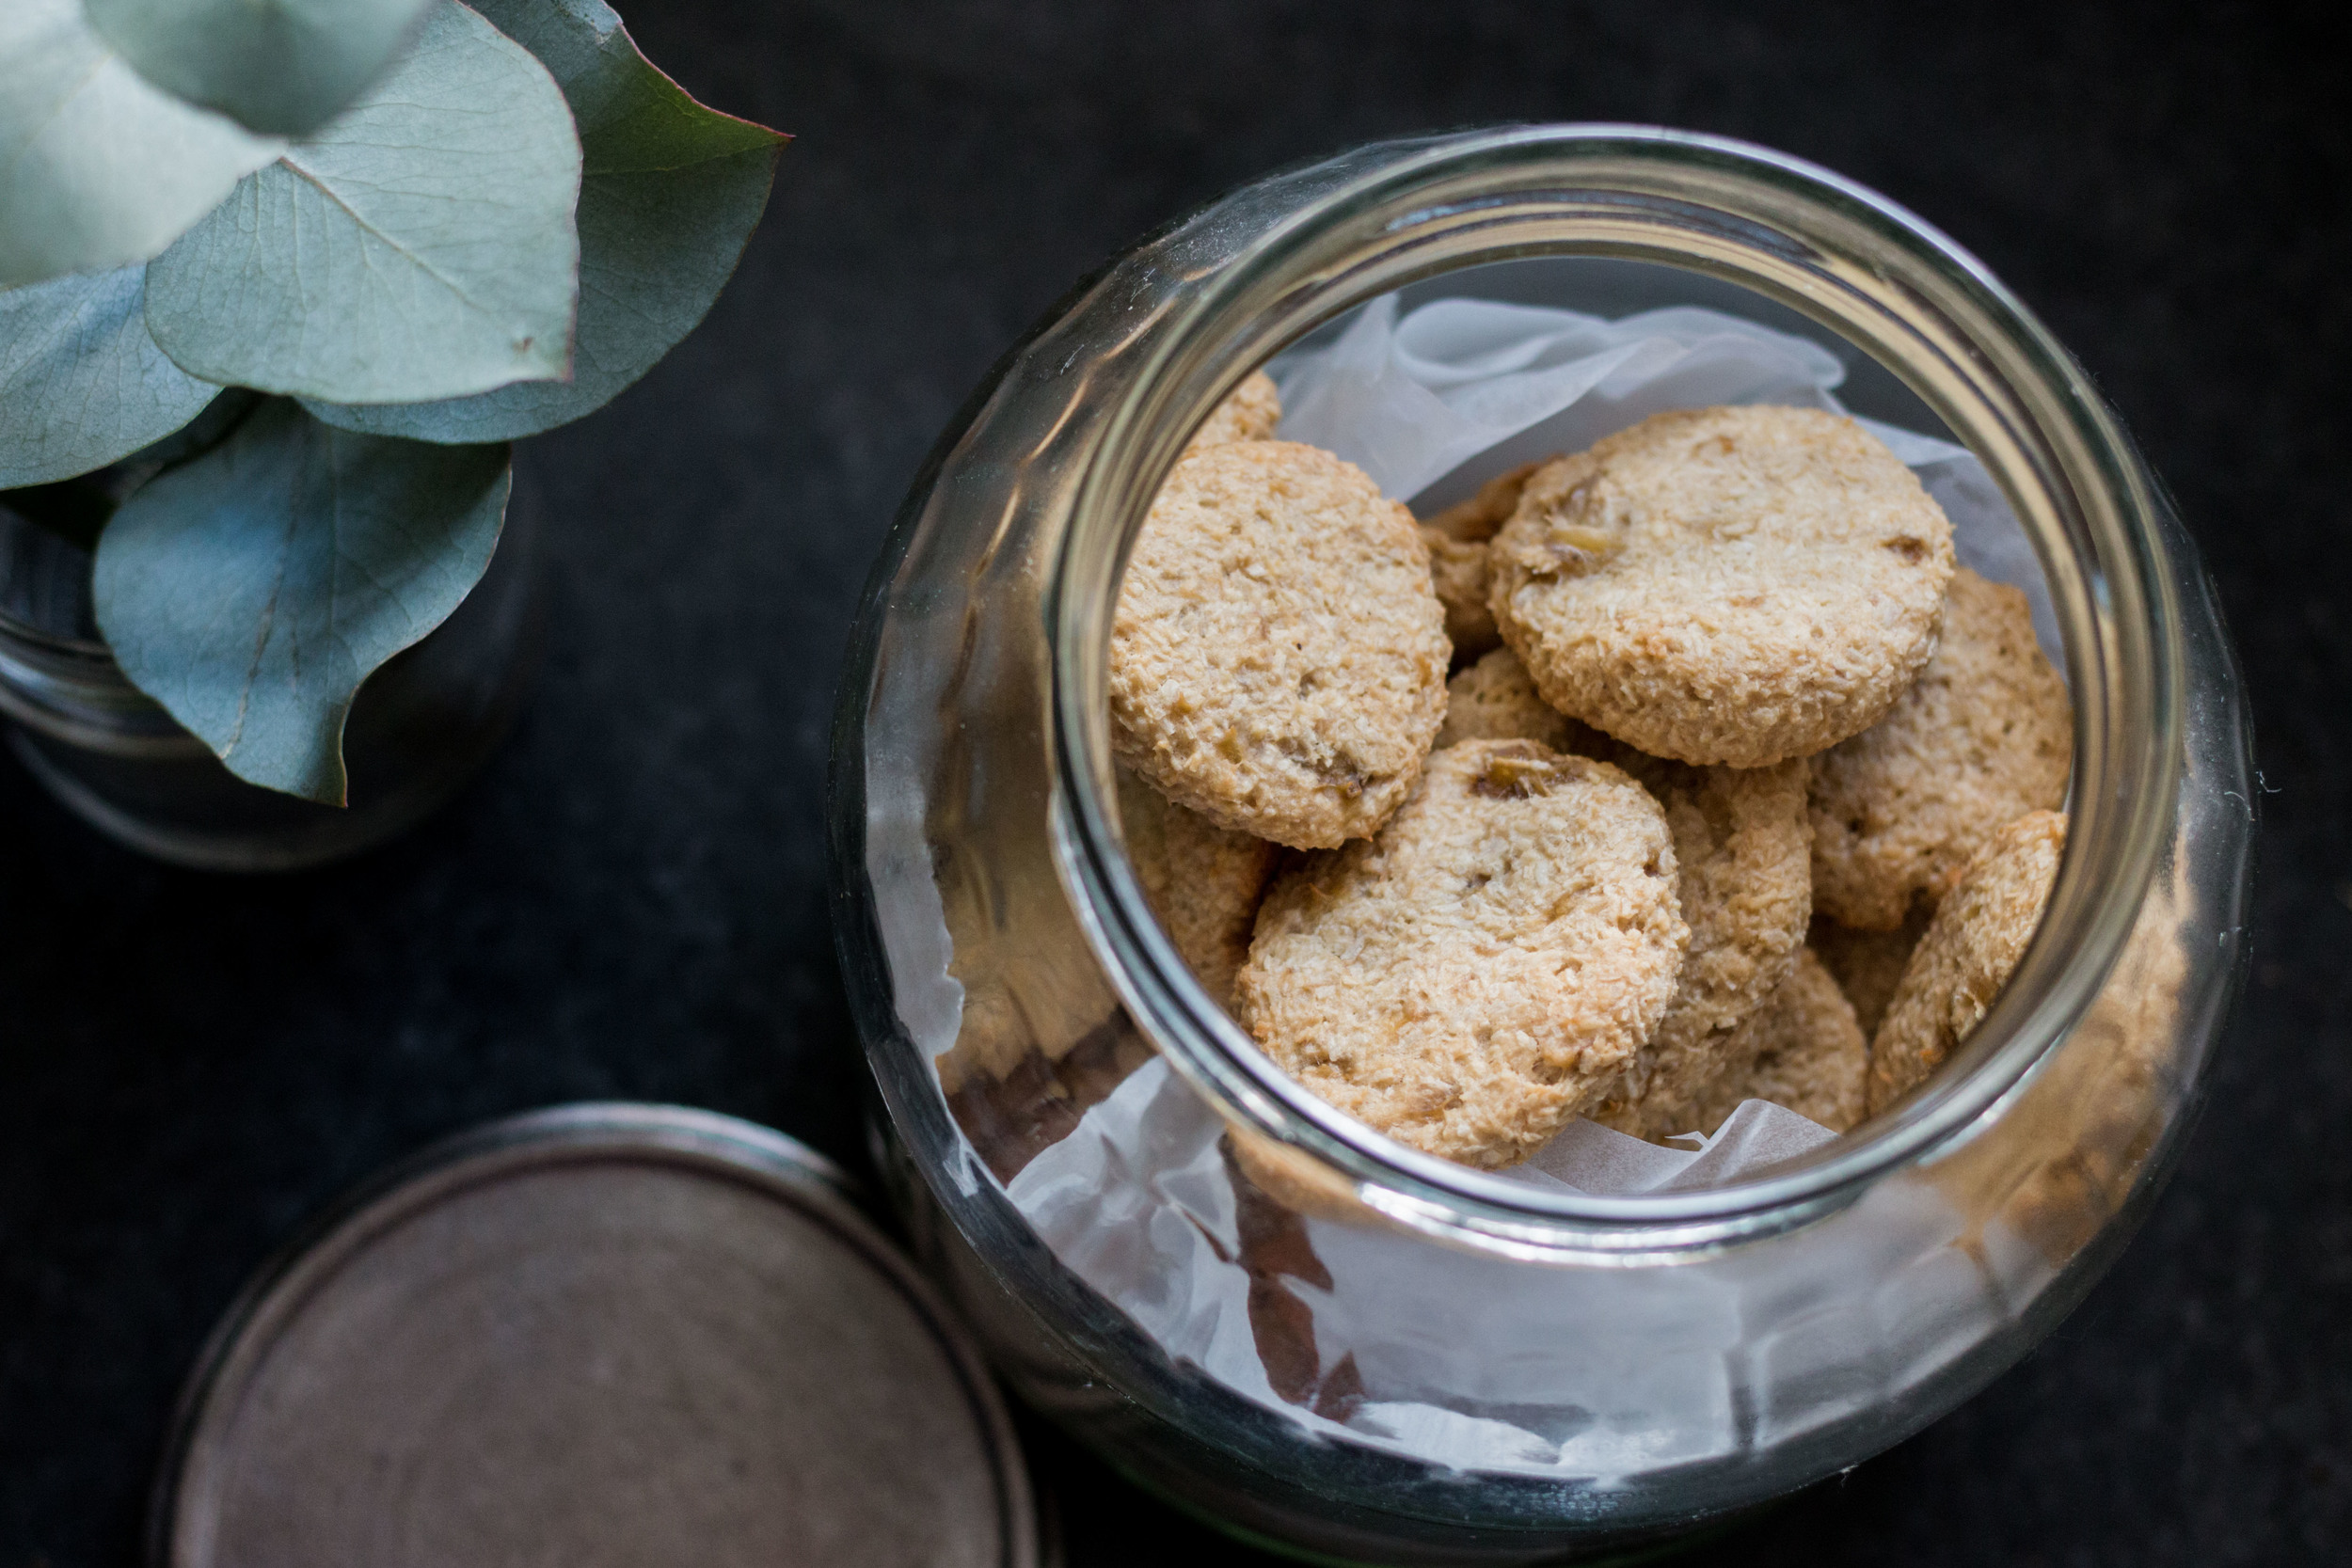 Biscotti per cani fatti in casa Homemade Dog biscuits